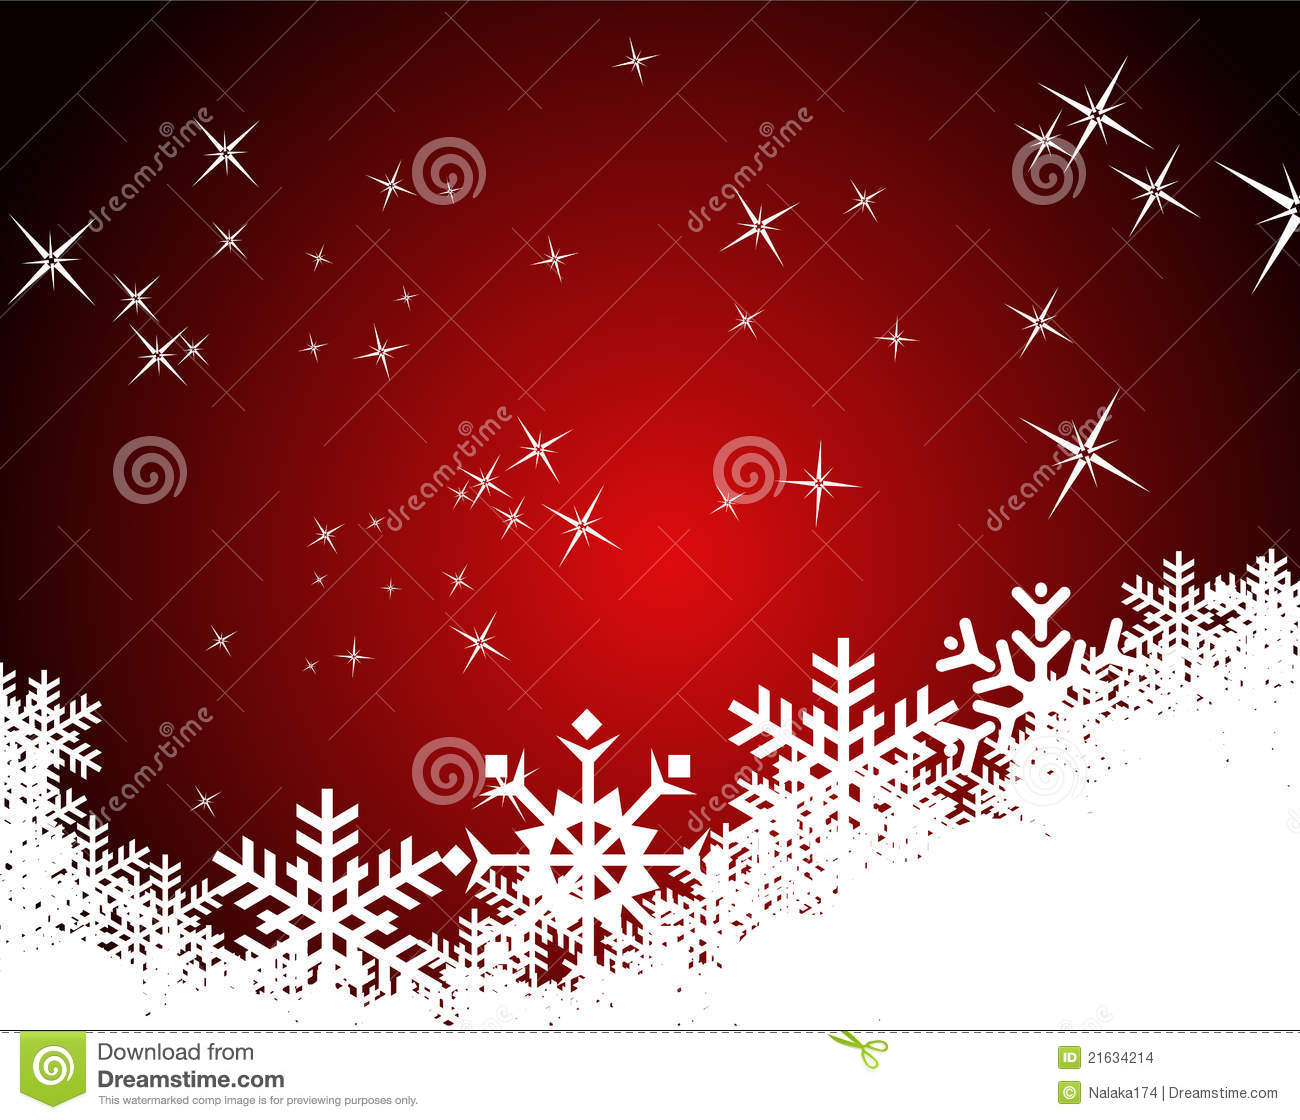 Awesome Christmas Blank Pertaining To Blank Christmas Templates